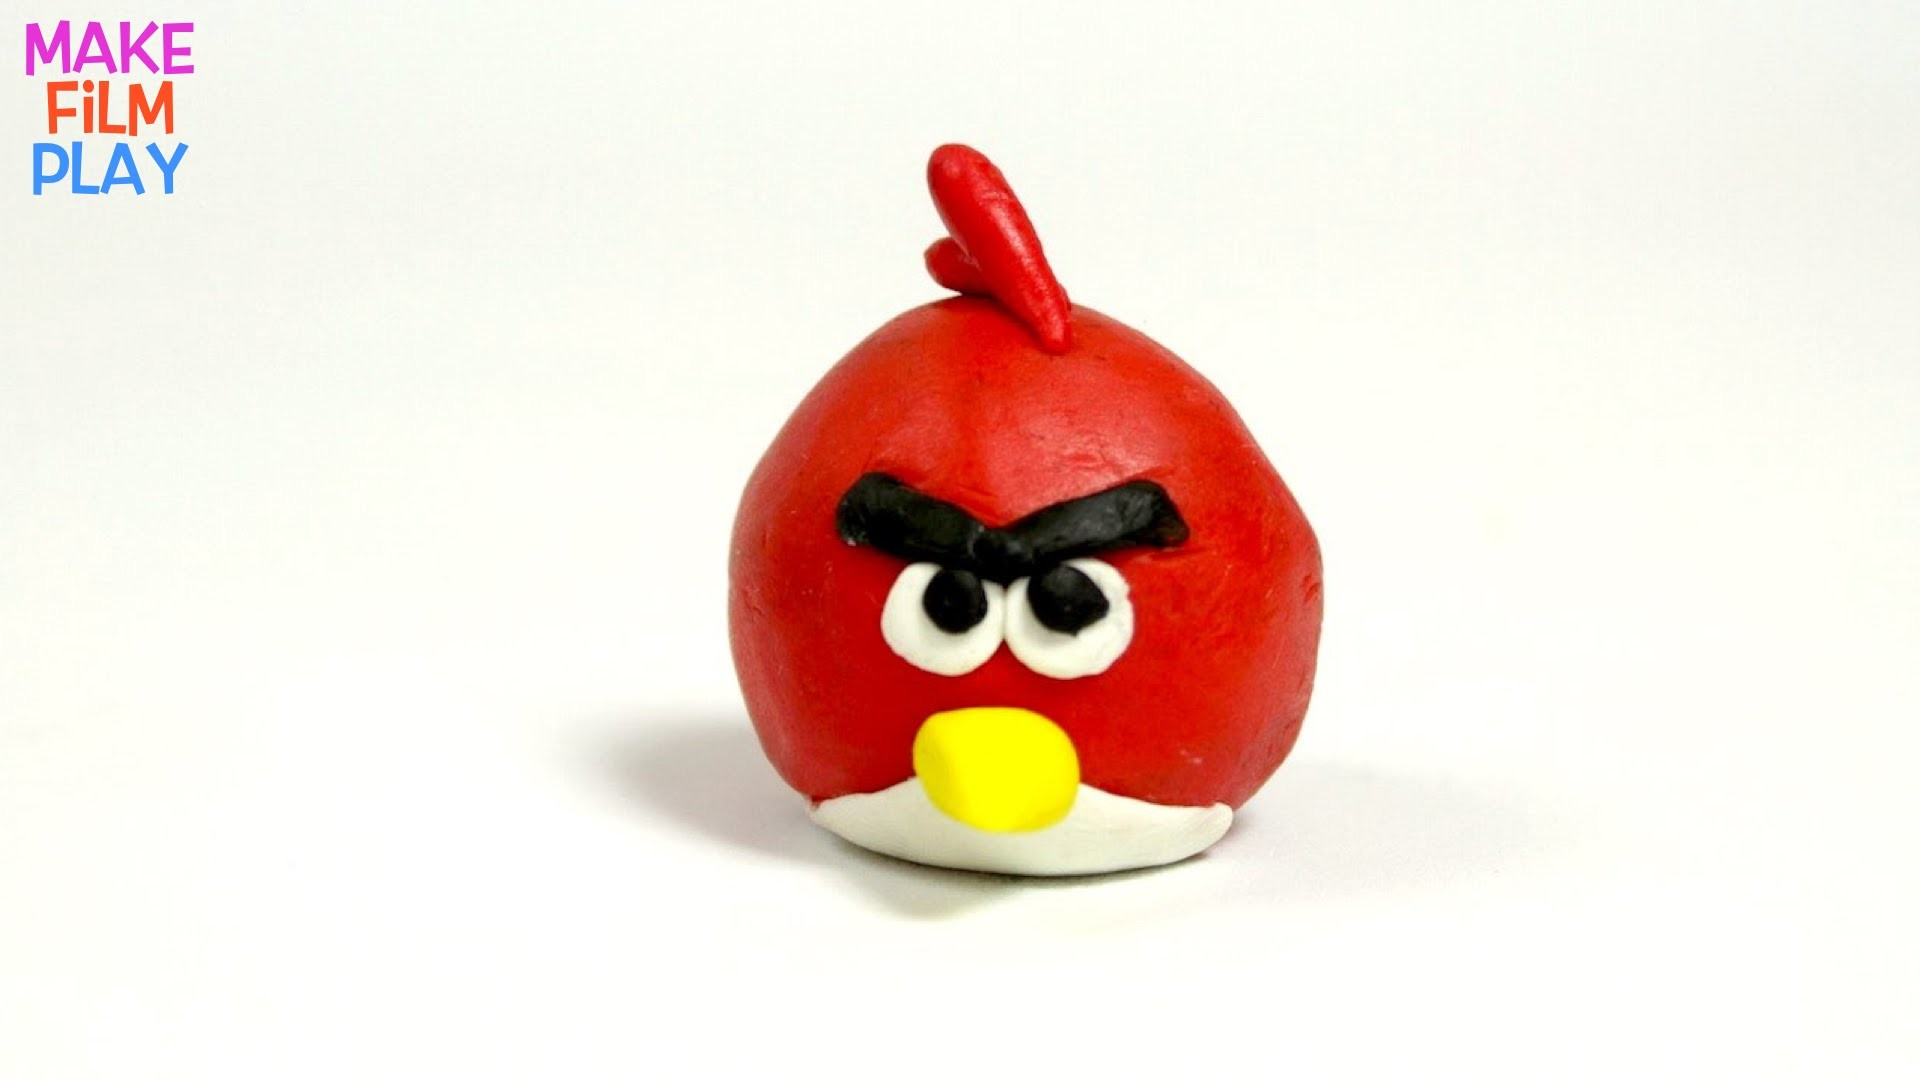 Play-doh Stop-motion How to Make Red Bird from Angry Birds